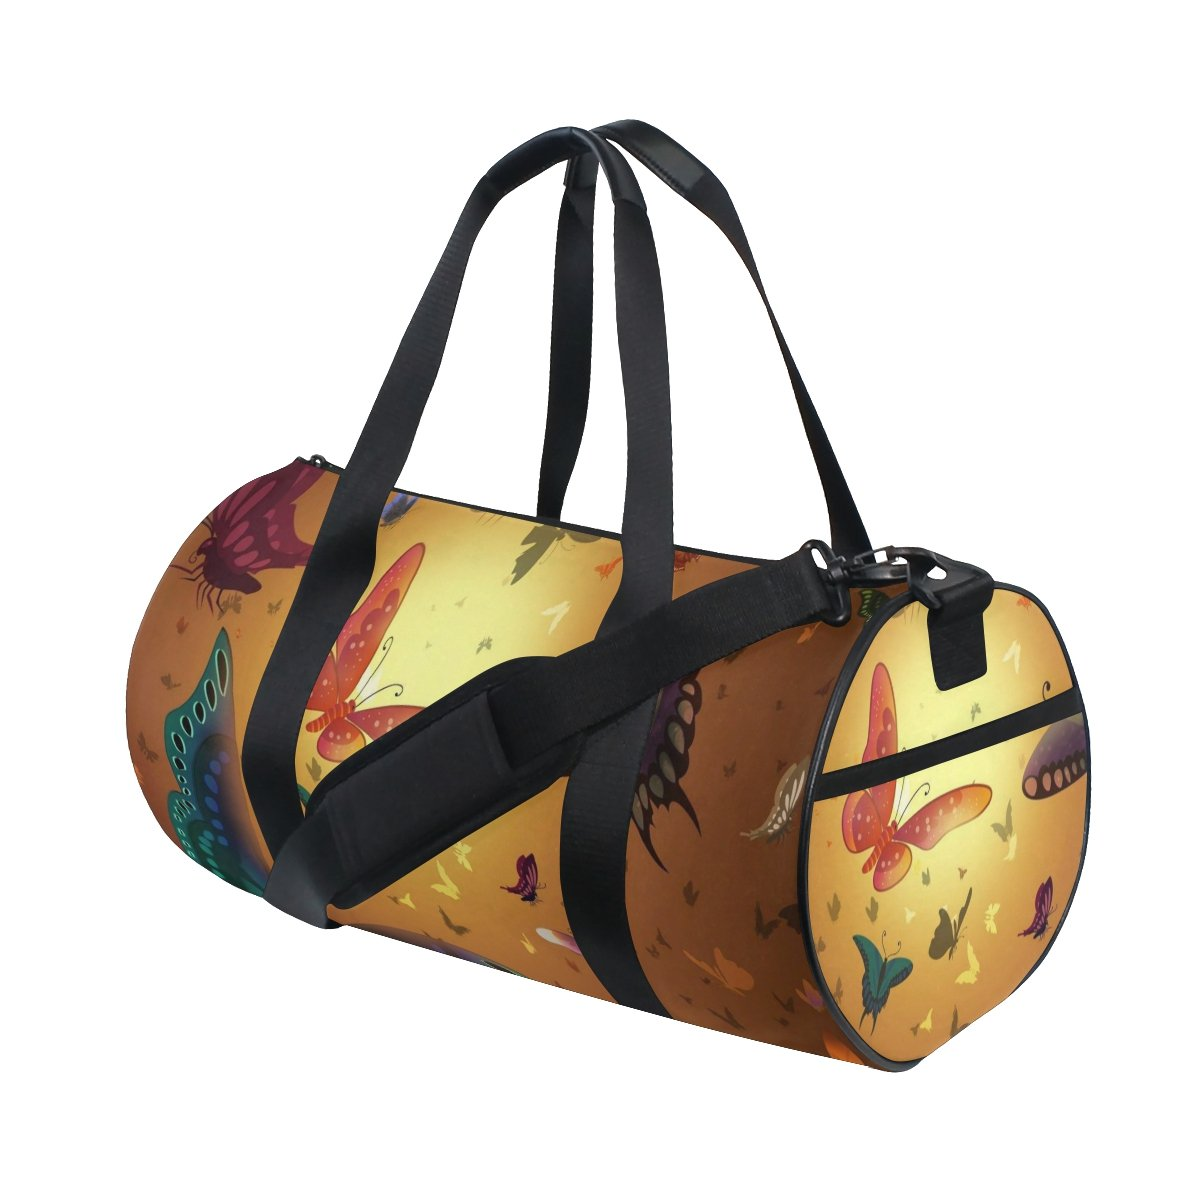 Butterflies Yellow Orange Lightweight Canvas Sports Travel Duffel Yoga Gym Bags